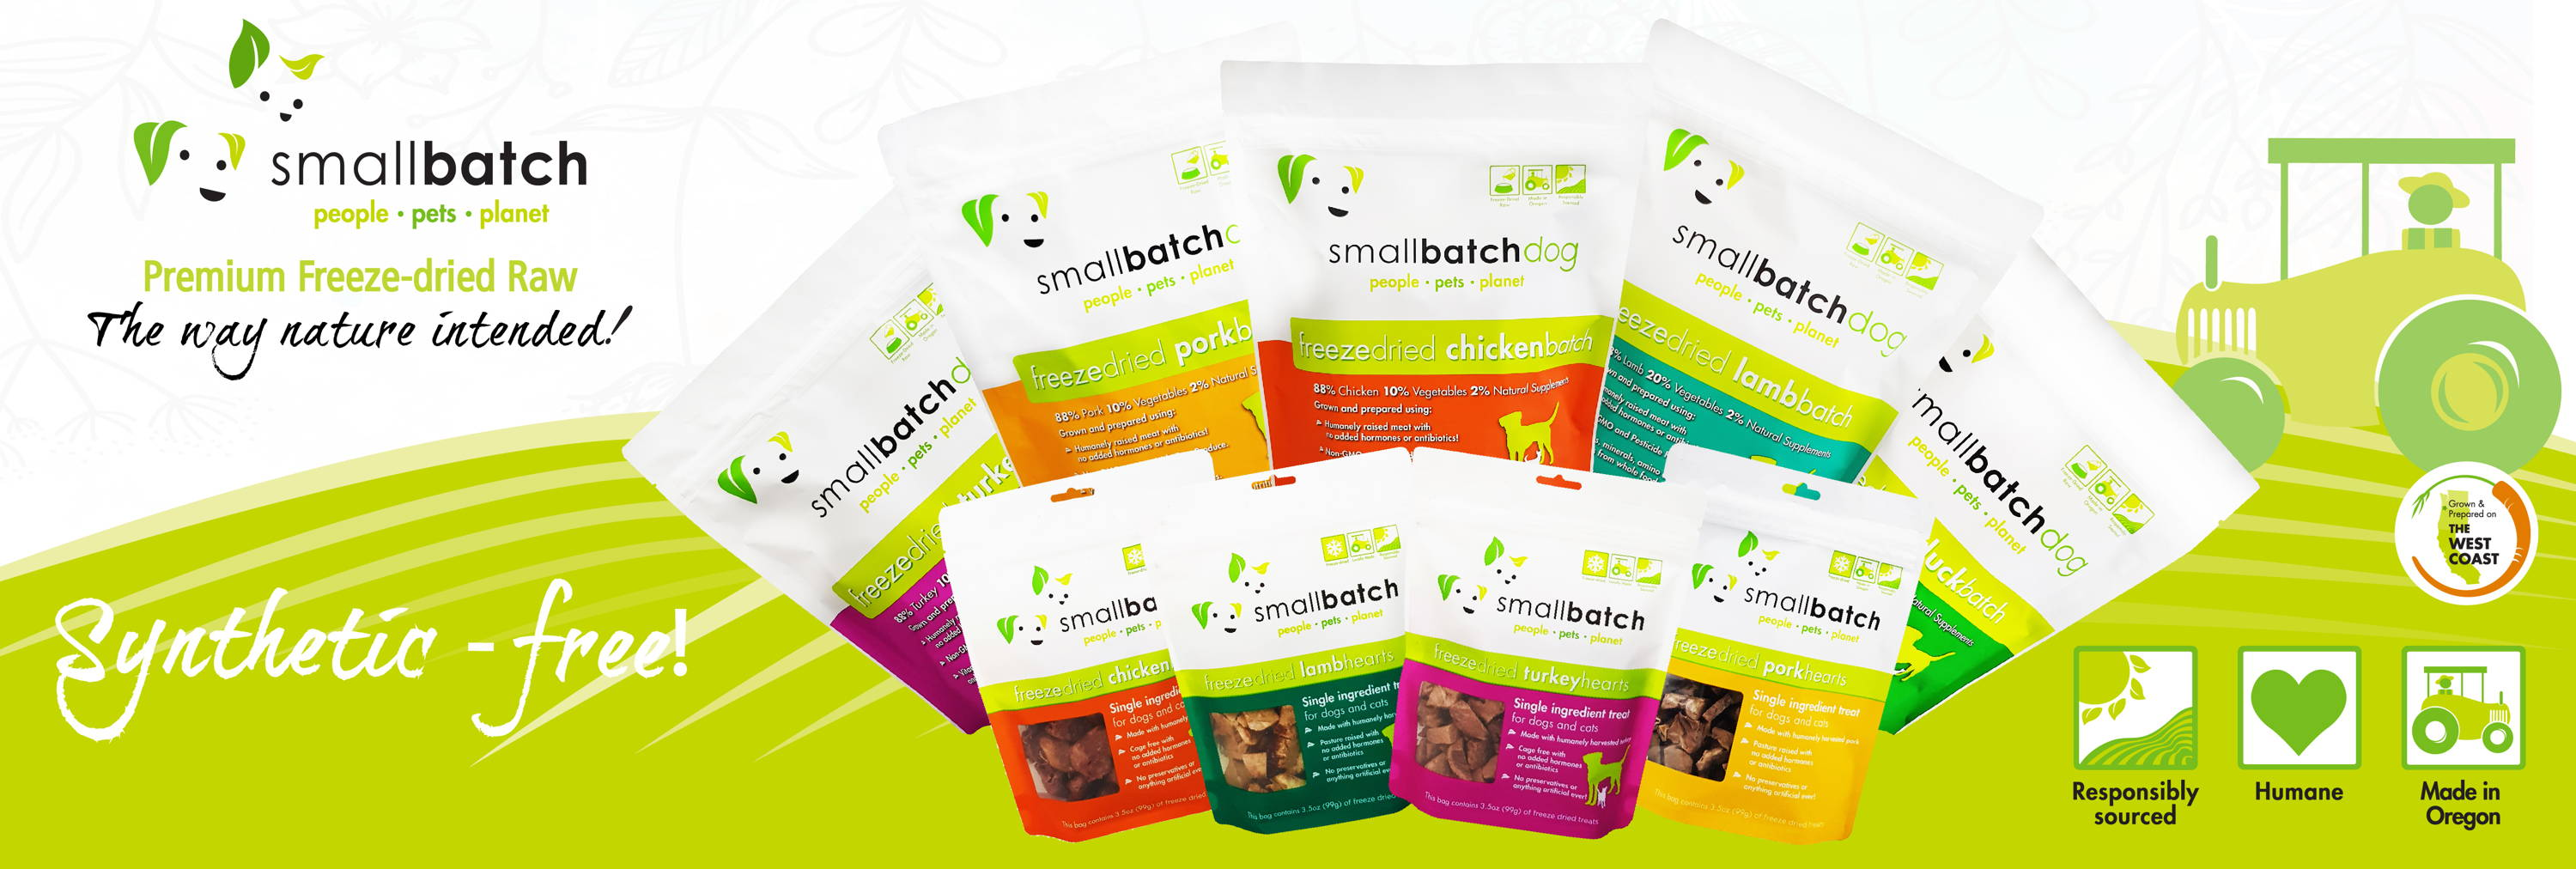 SmallBatch Pets freeze-dried raw dog food synthetic free banner